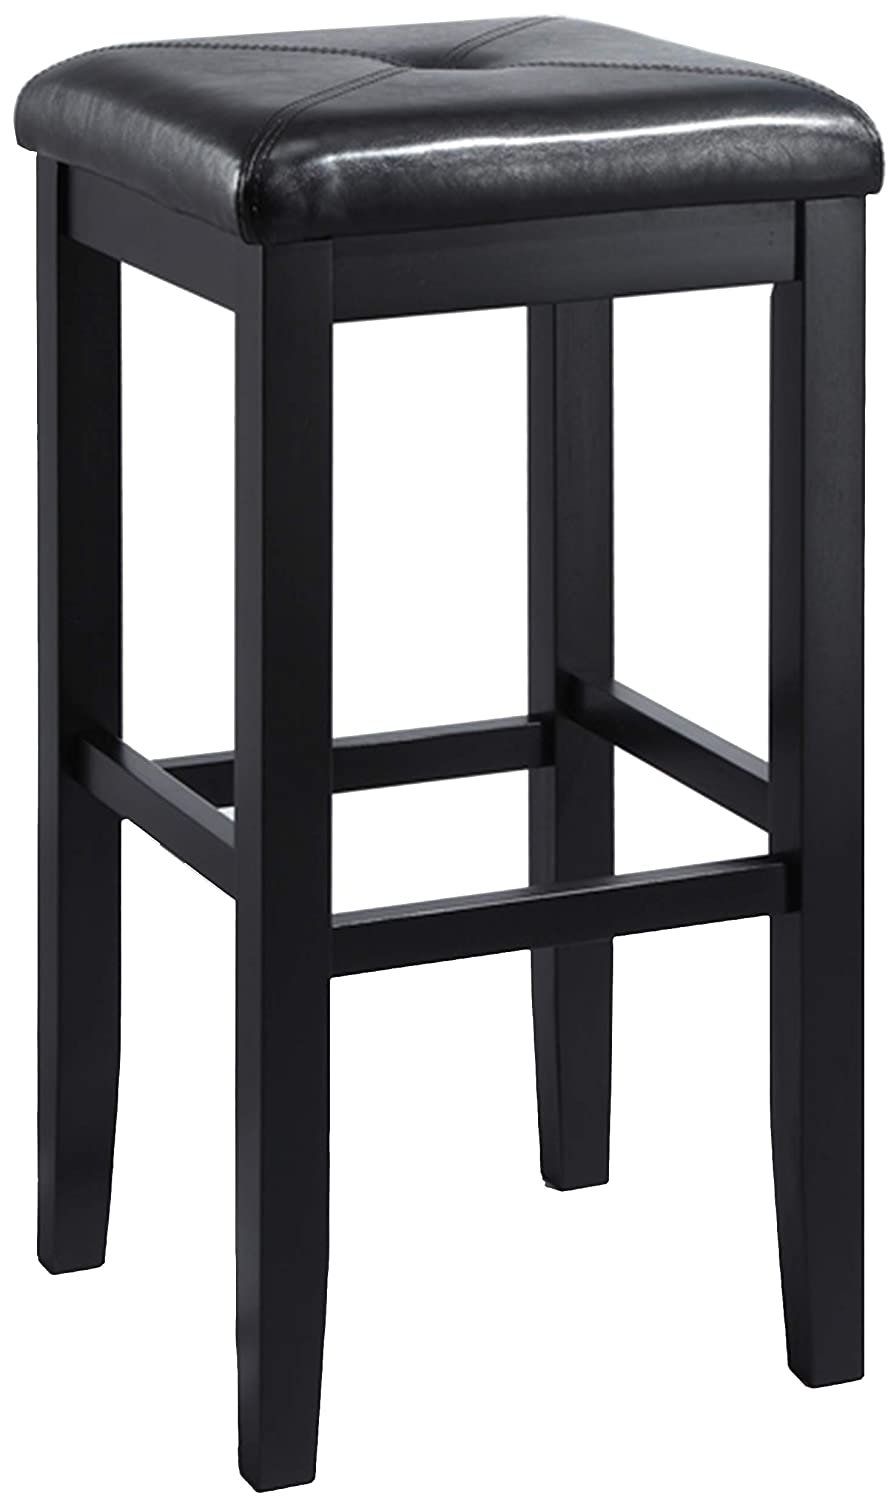 Crosley Furniture CF500529-BK Upholstered Square Seat Bar Stool (Set of 2), 29-inch, Black